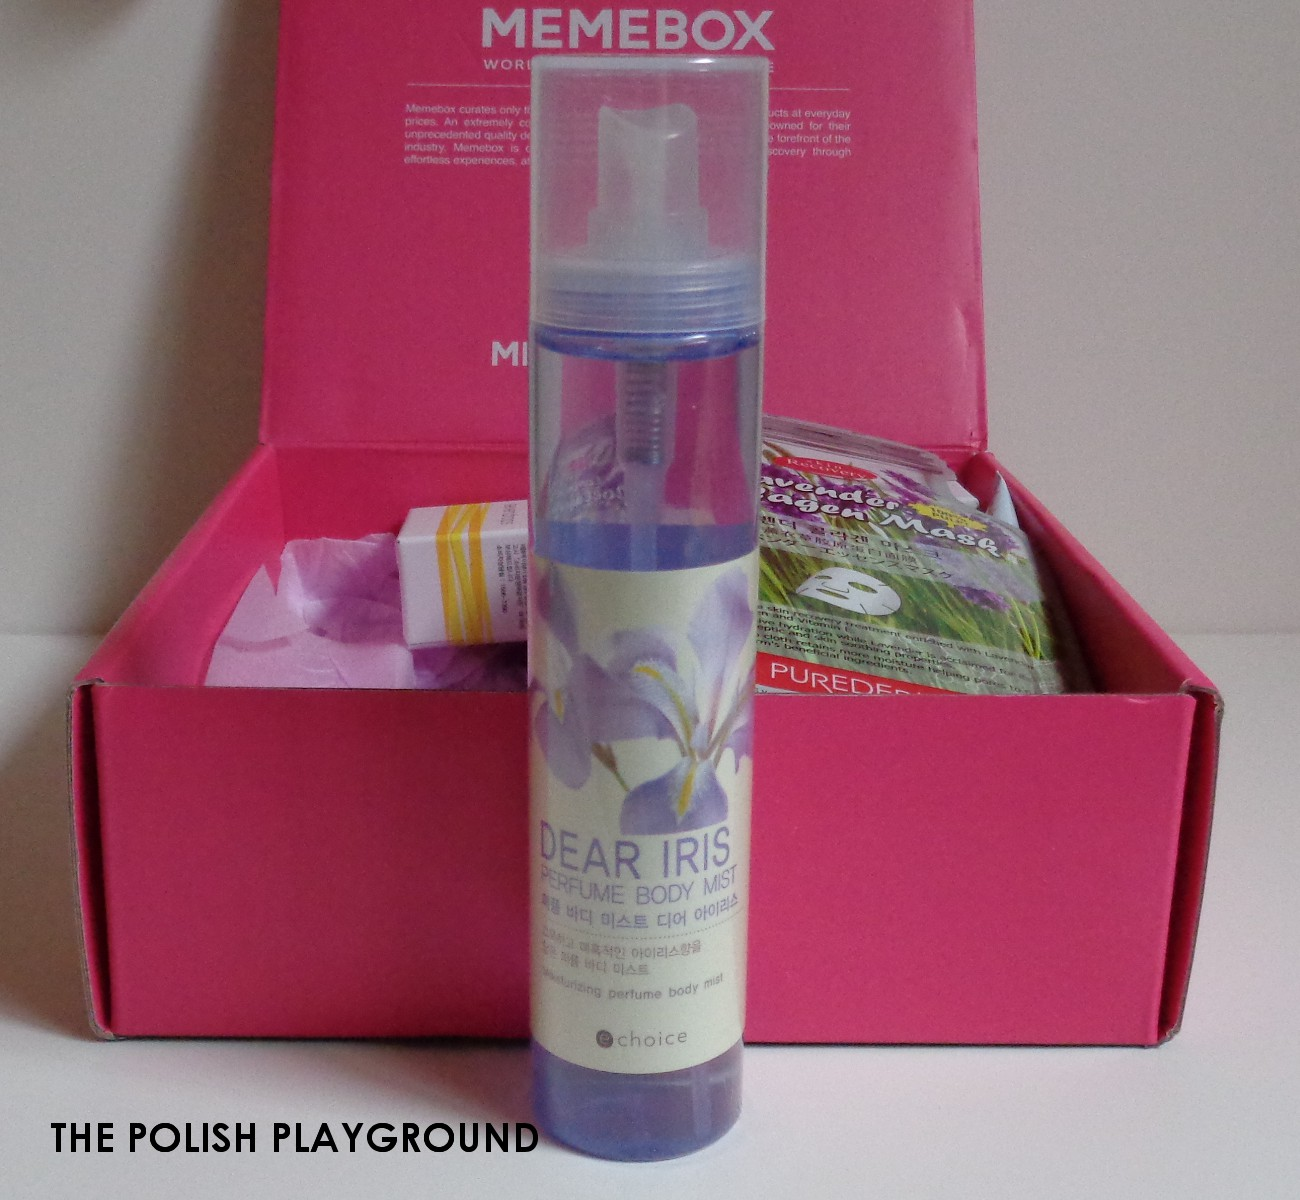 Memebox Seeds & Flowers Unboxing - ECHOICE Perfume Body Mist Dear Iris